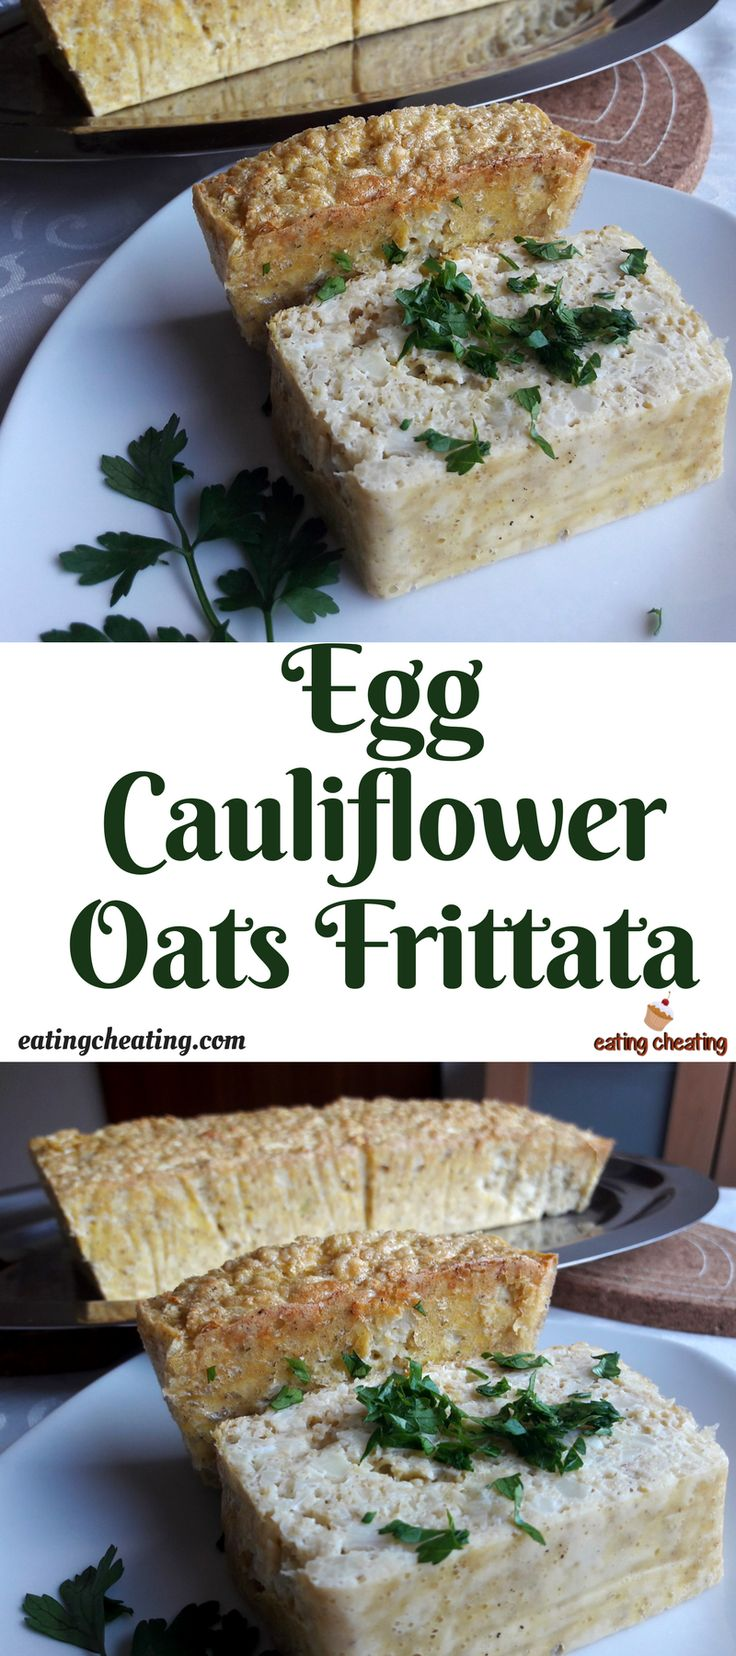 Here is one more easy and healthy breakfast recipe. For this breakfast recipe I came up with an idea for making egg frittata in a combination wth cauliflower and oats. This egg frittata with cauliflower and oats is very simple to make, baked in oven, and your breakfast will be full of healthy ingredients and it will taste delicious!